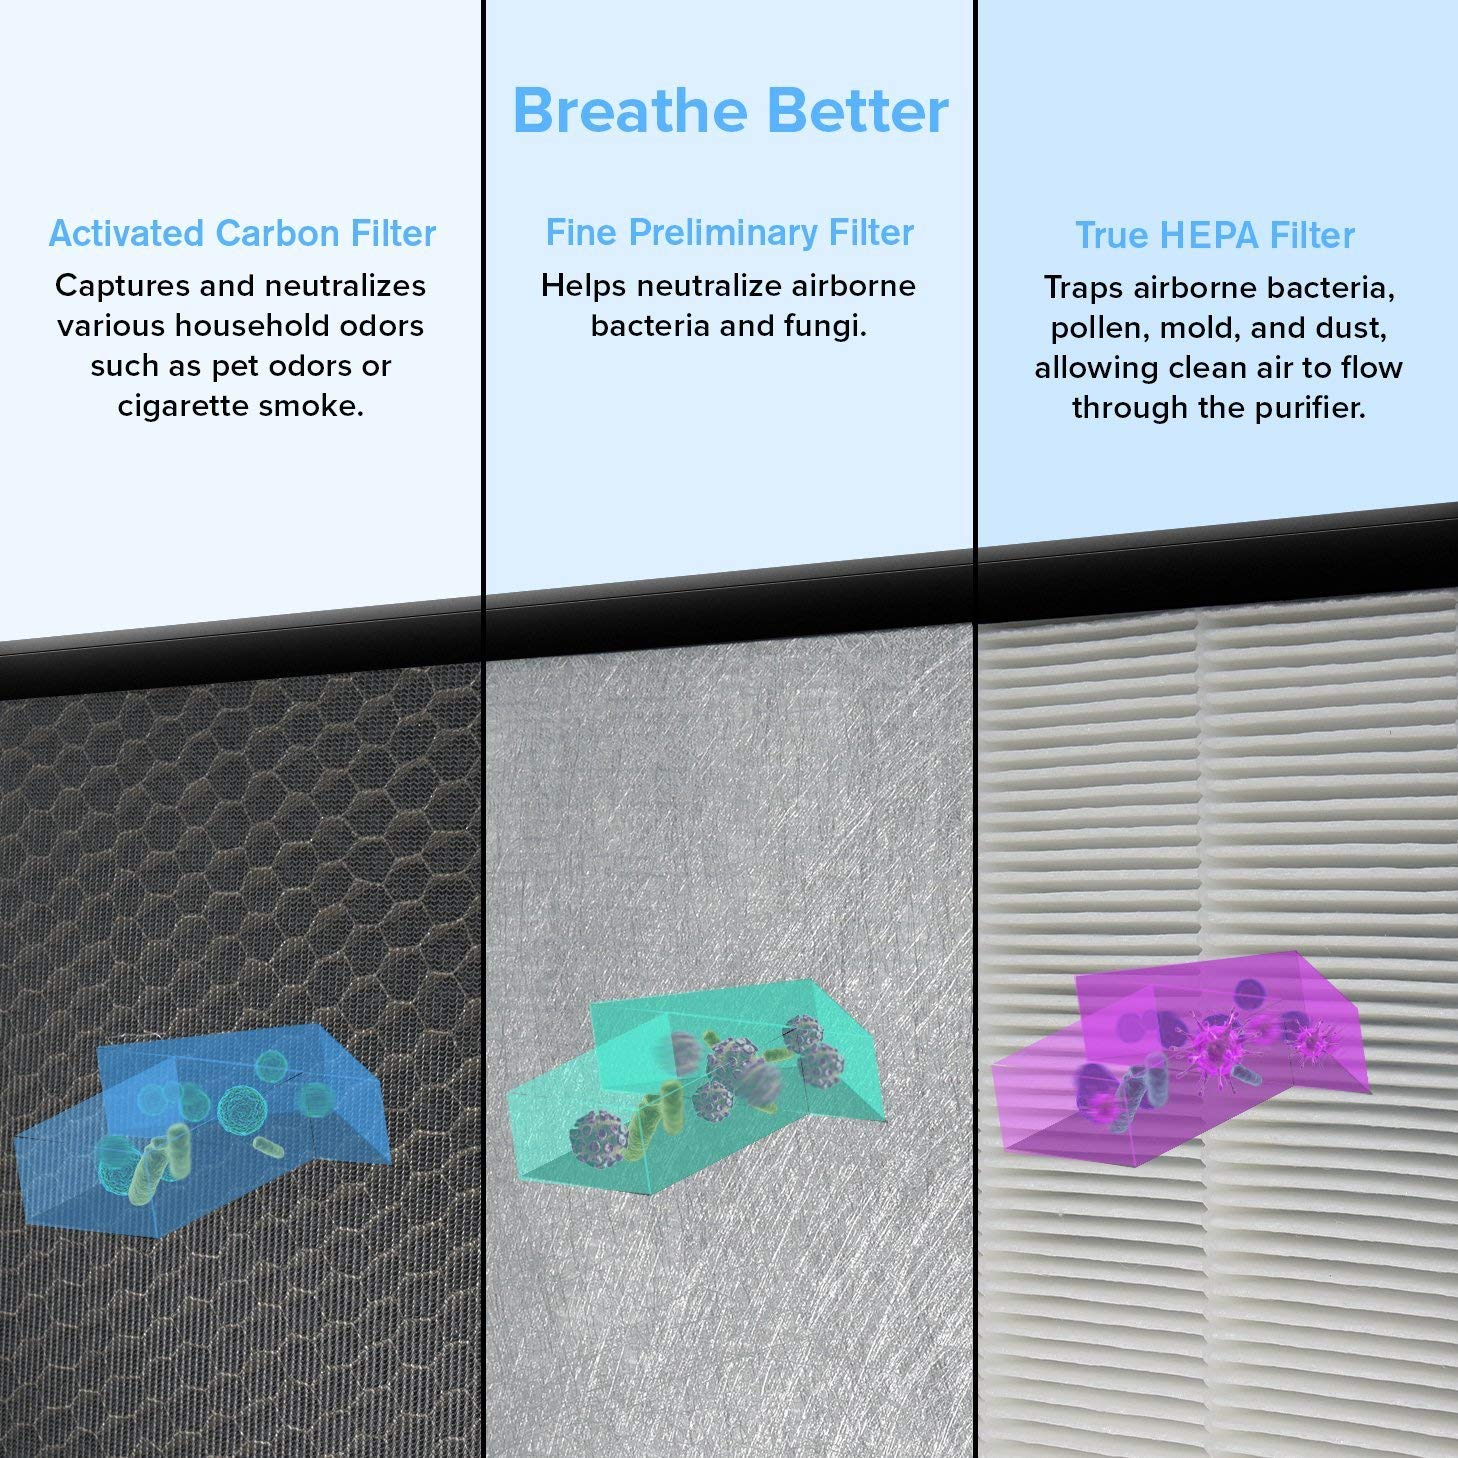 Best Air Purifier for Odor Elimination - Features Our Air Purifier Needs to Eliminate Odors